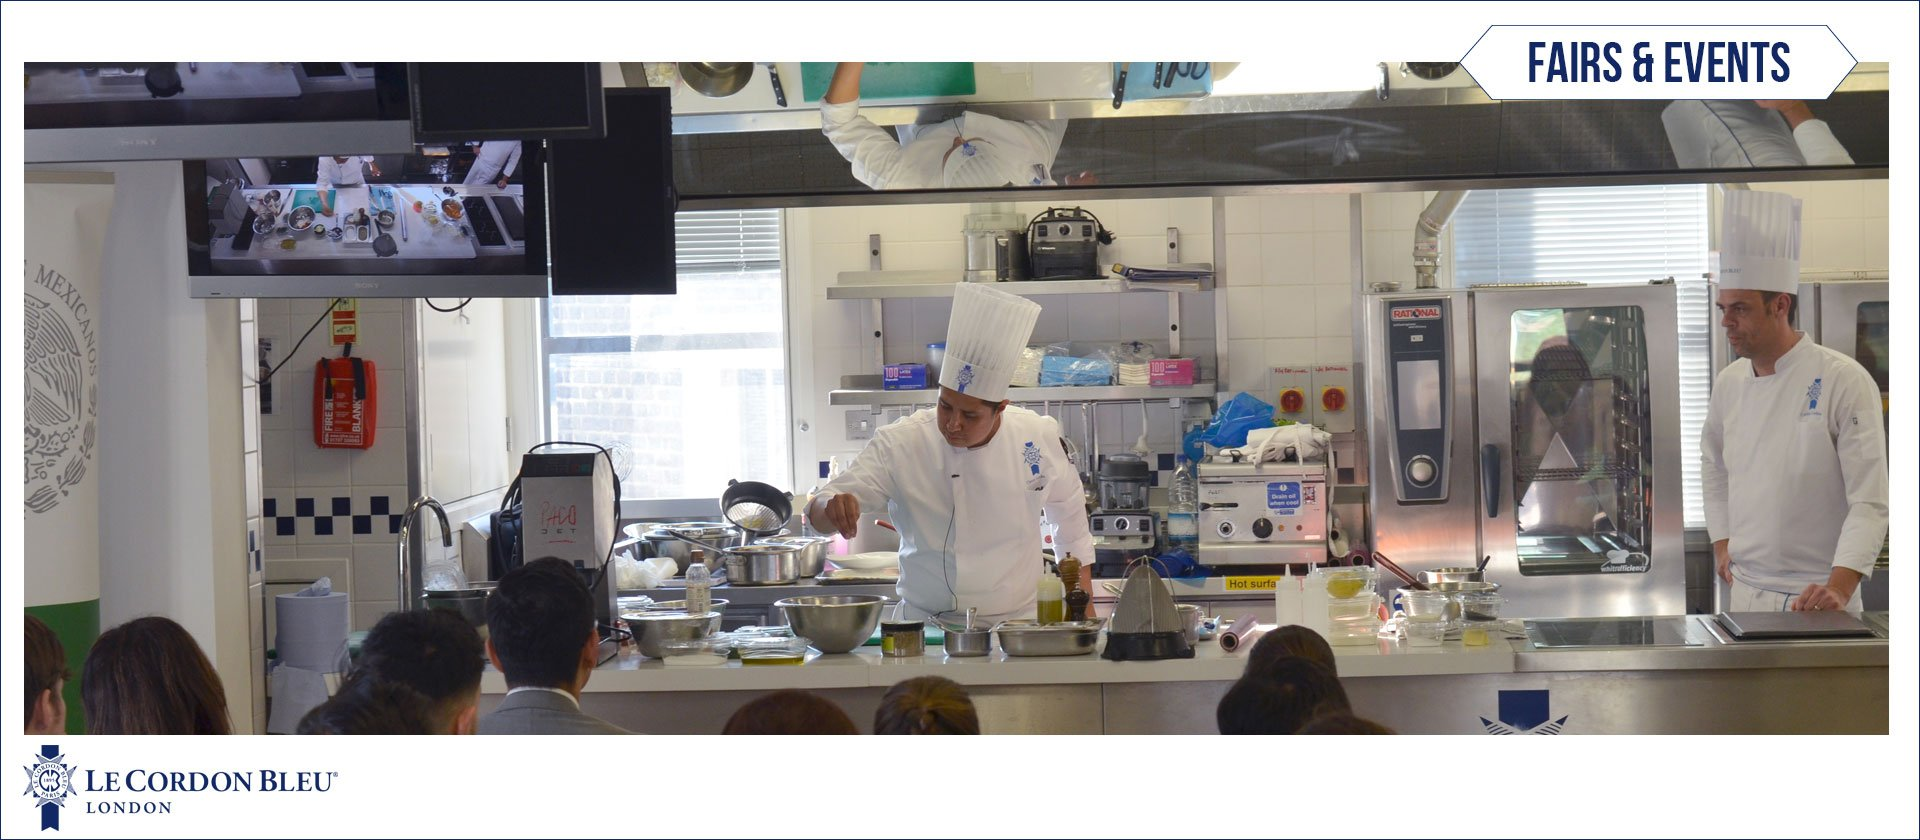 Mexican cuisine demonstration at Le Cordon Bleu London